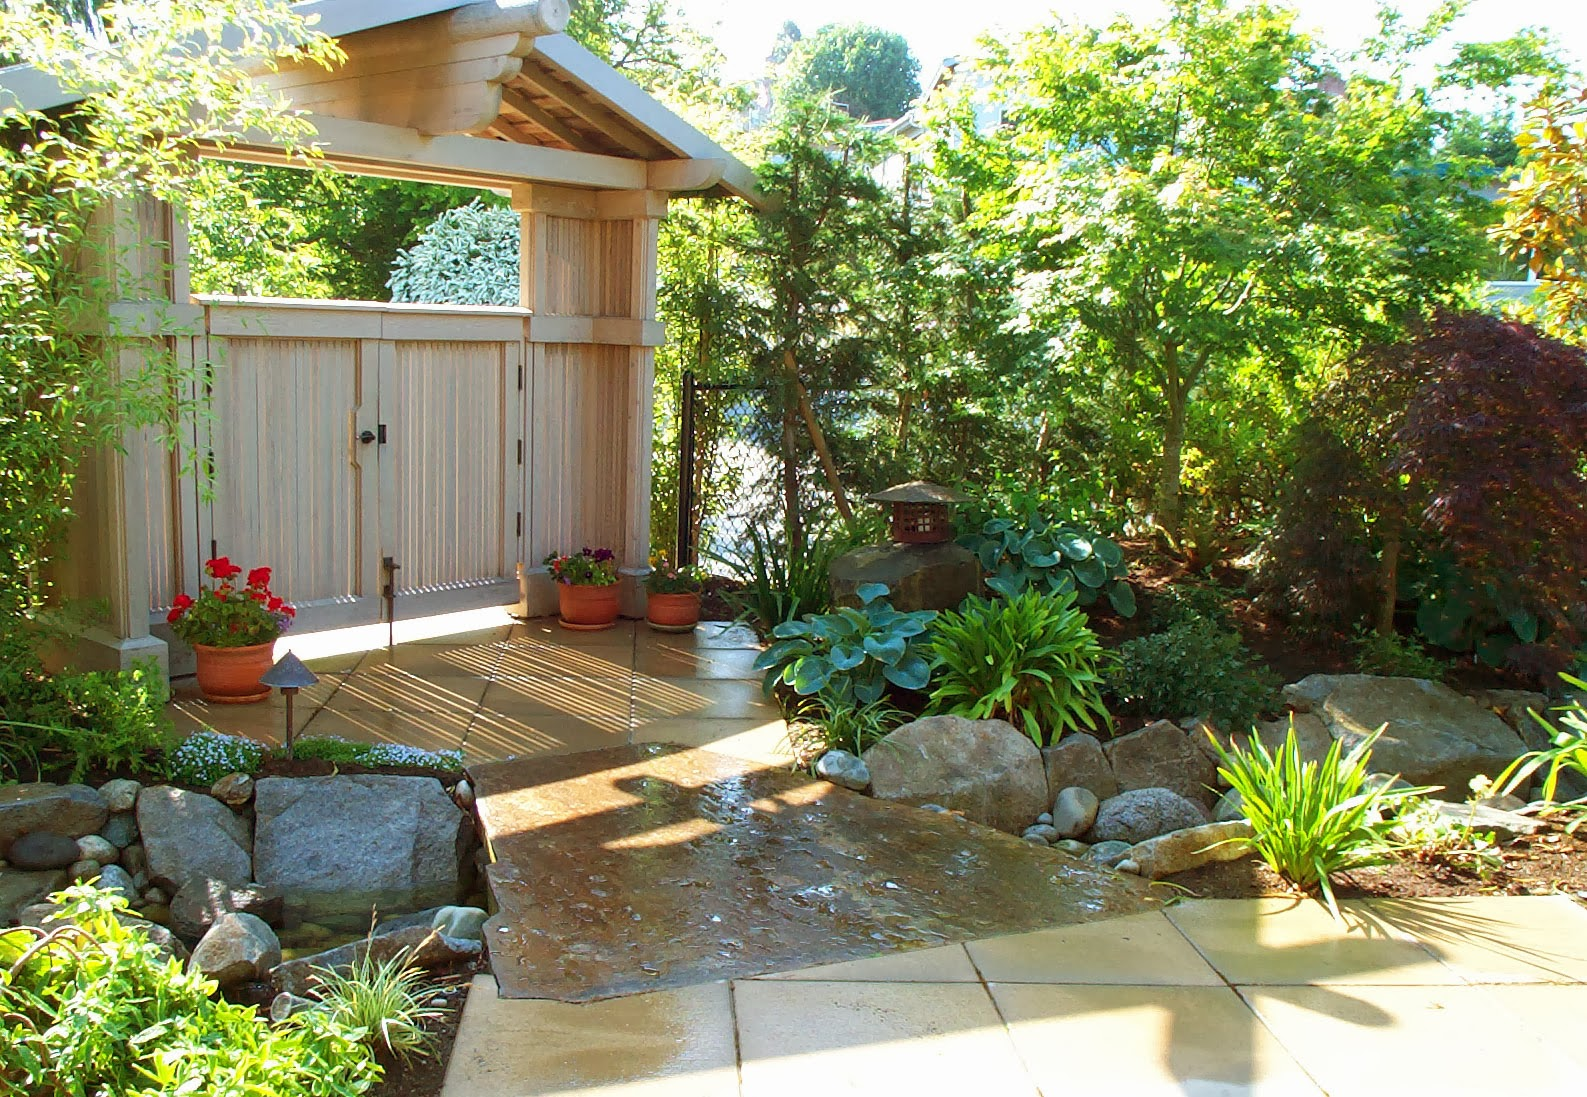 gardening and landscaping front yard landscaping ideas On landscape designs for backyards